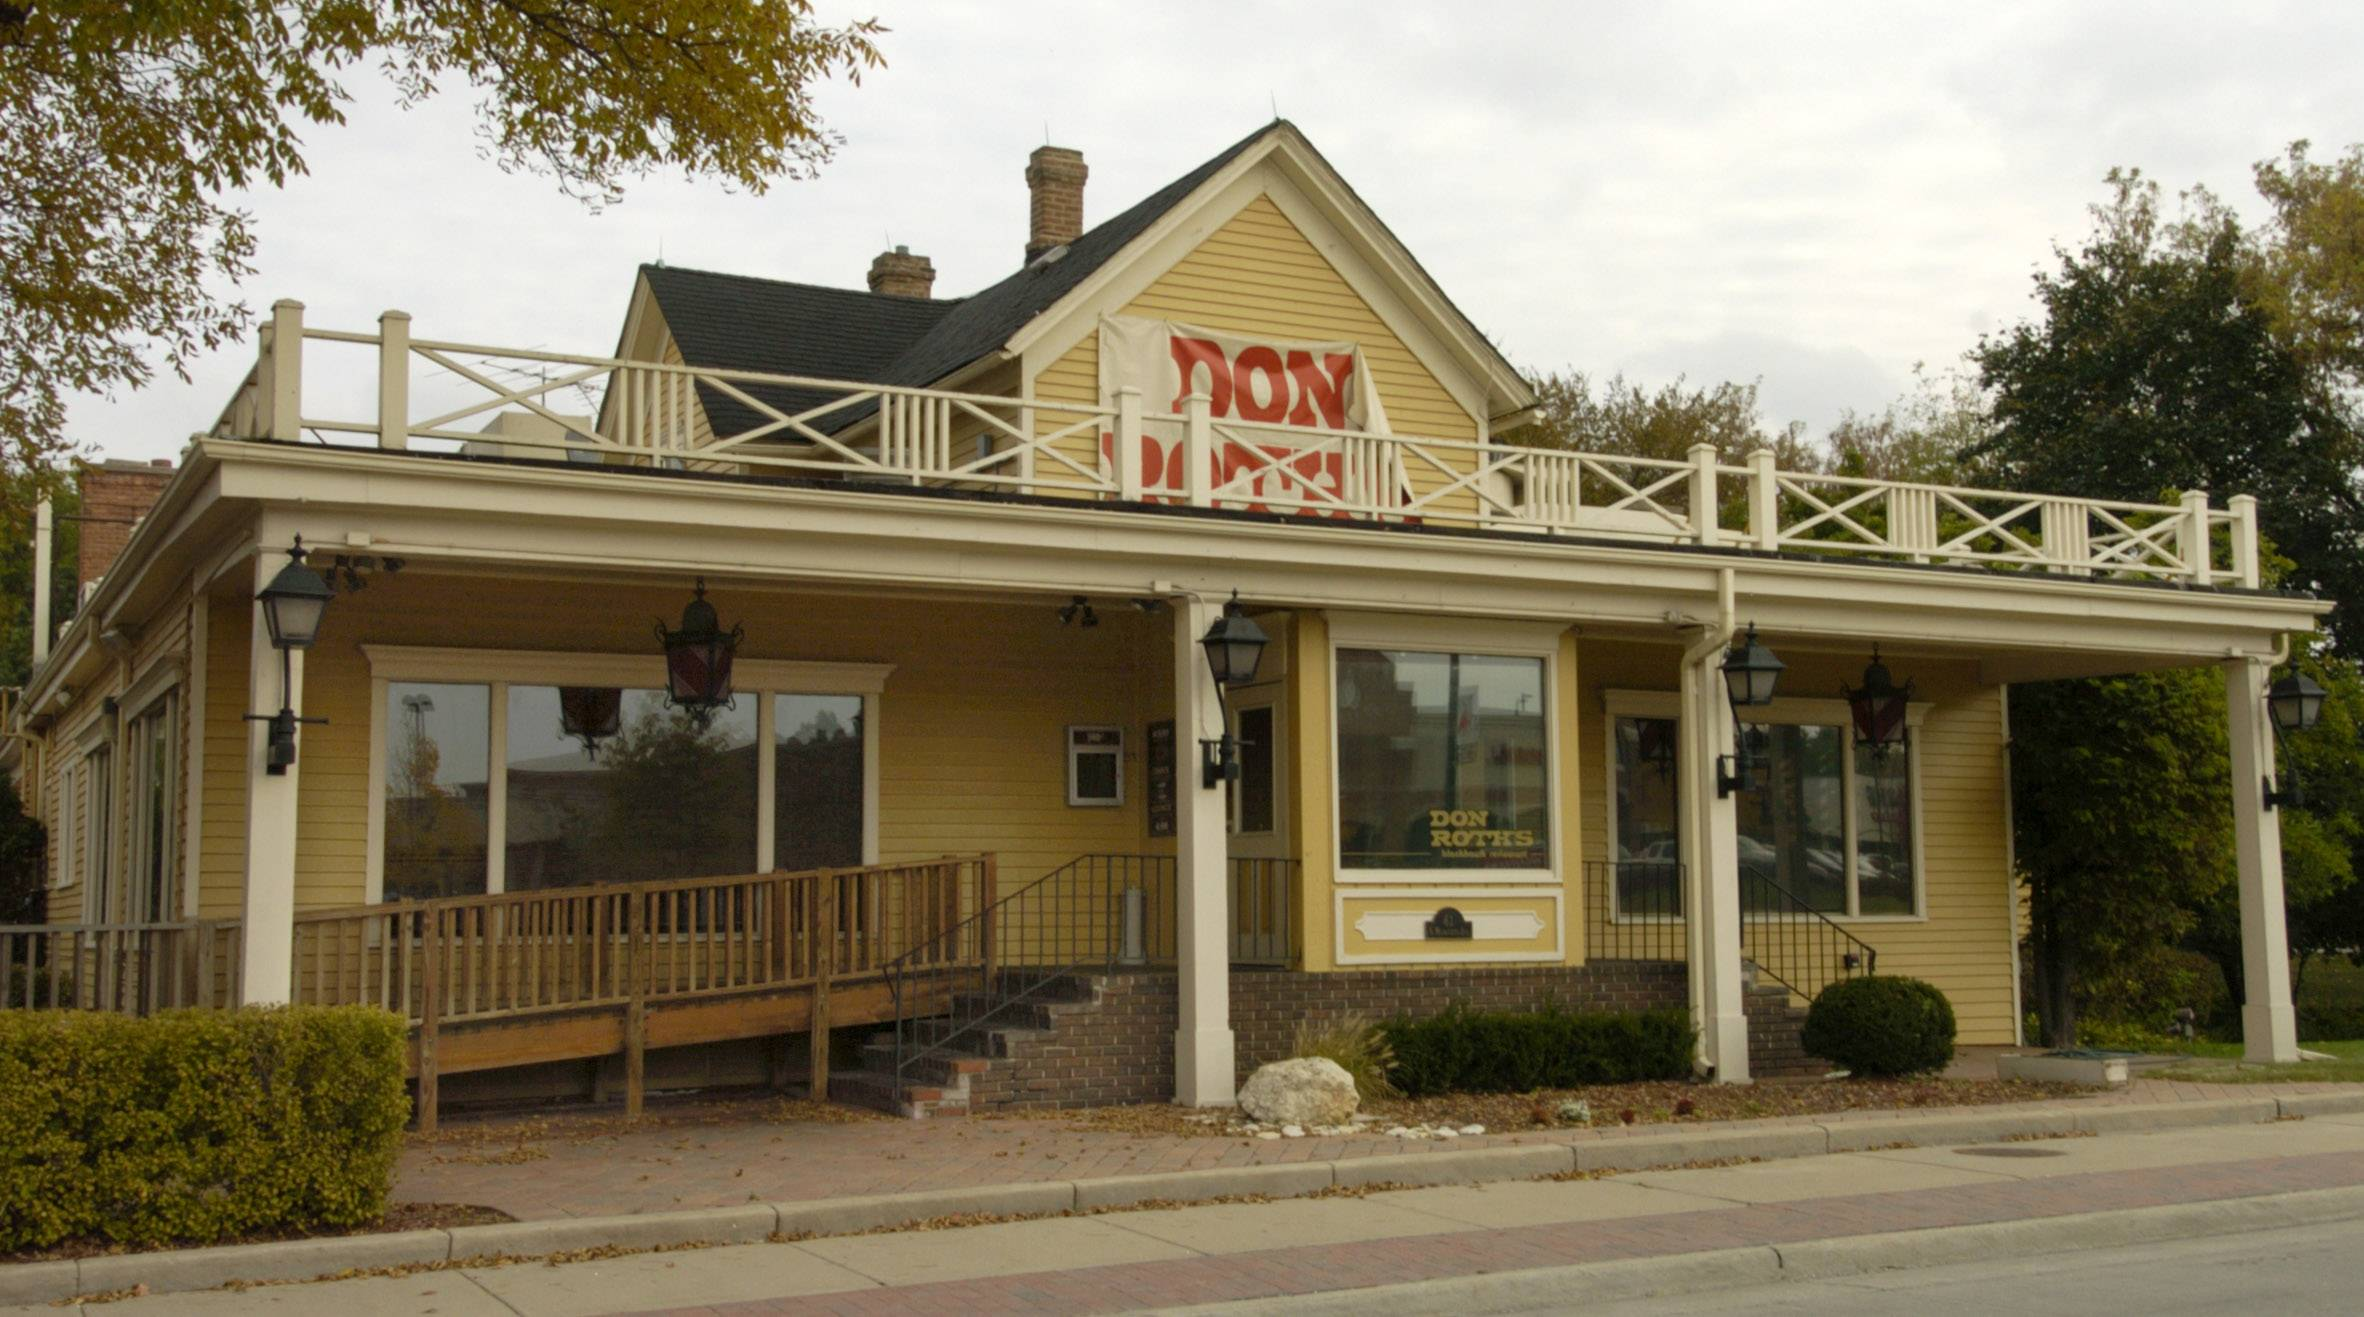 This is what the exterior of Don Roth's Blackhawk restaurant in Wheeling looked like a decade ago.